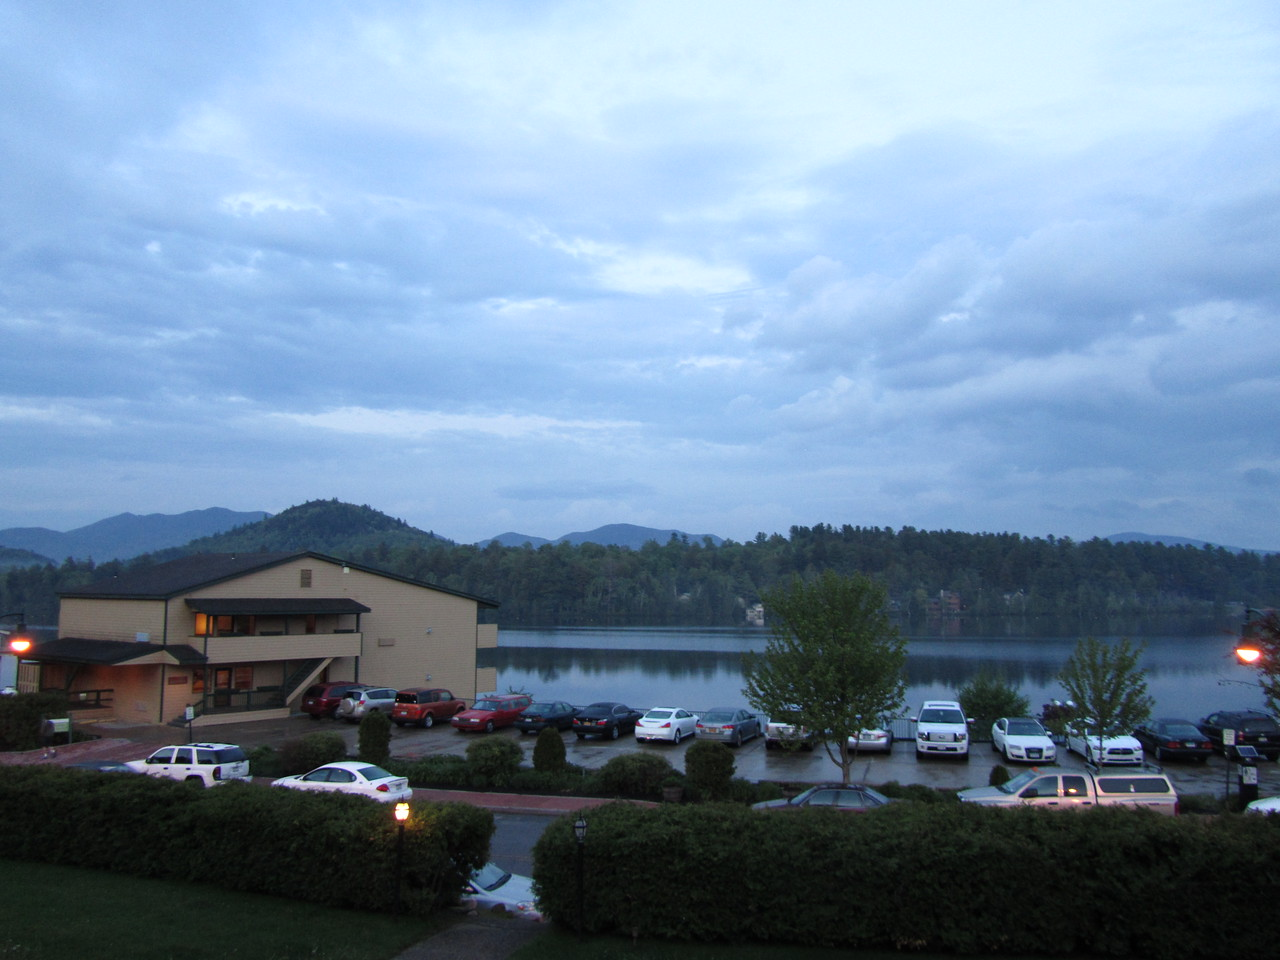 The view from my balcony. Mirror lake with a few high peaks in the background. I took this after dinner at Adirondack Steak and Seafood.